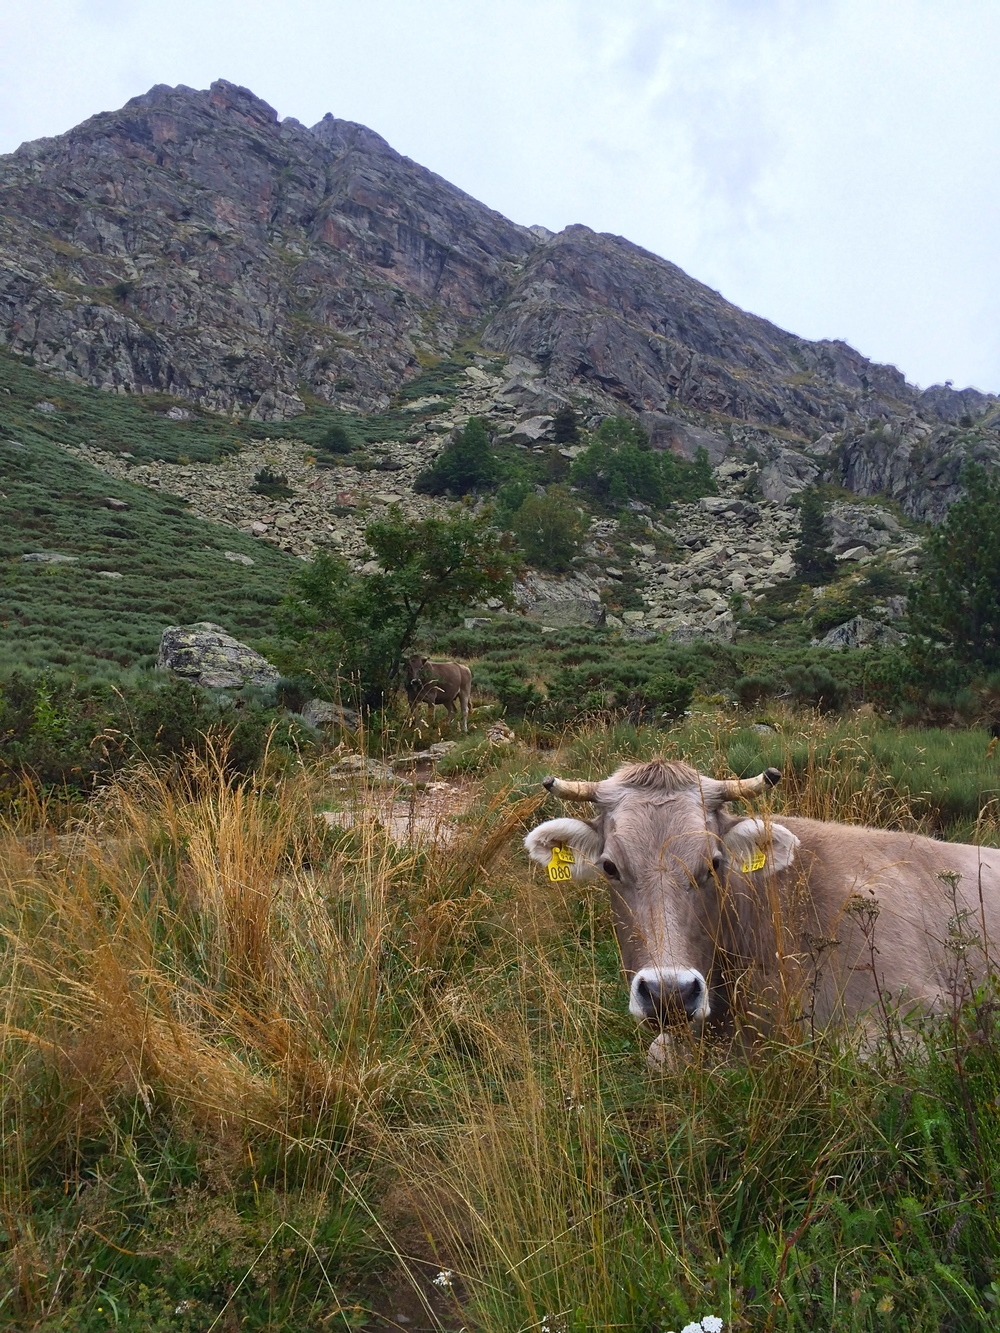 You can't miss these fluffy mountain cows in Andorra.  They seem to roam from the highest mountain peaks down all the way to the city streets, and wear bells filling the valleys with music as they walk.